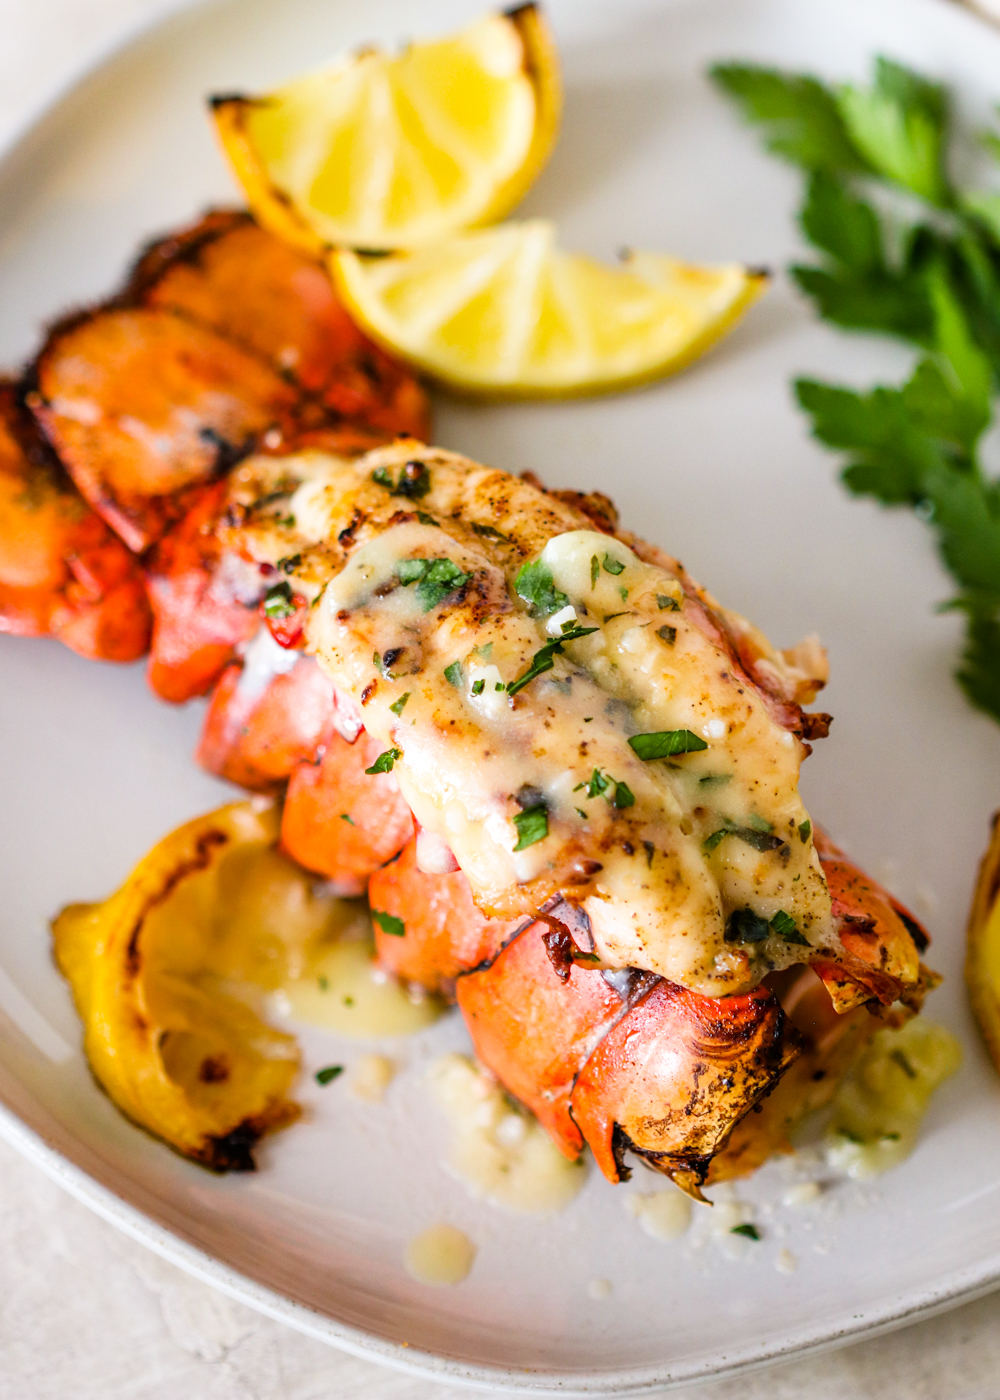 Broiled Lobster Tails With Garlic Lemon Butter Gimme Delicious